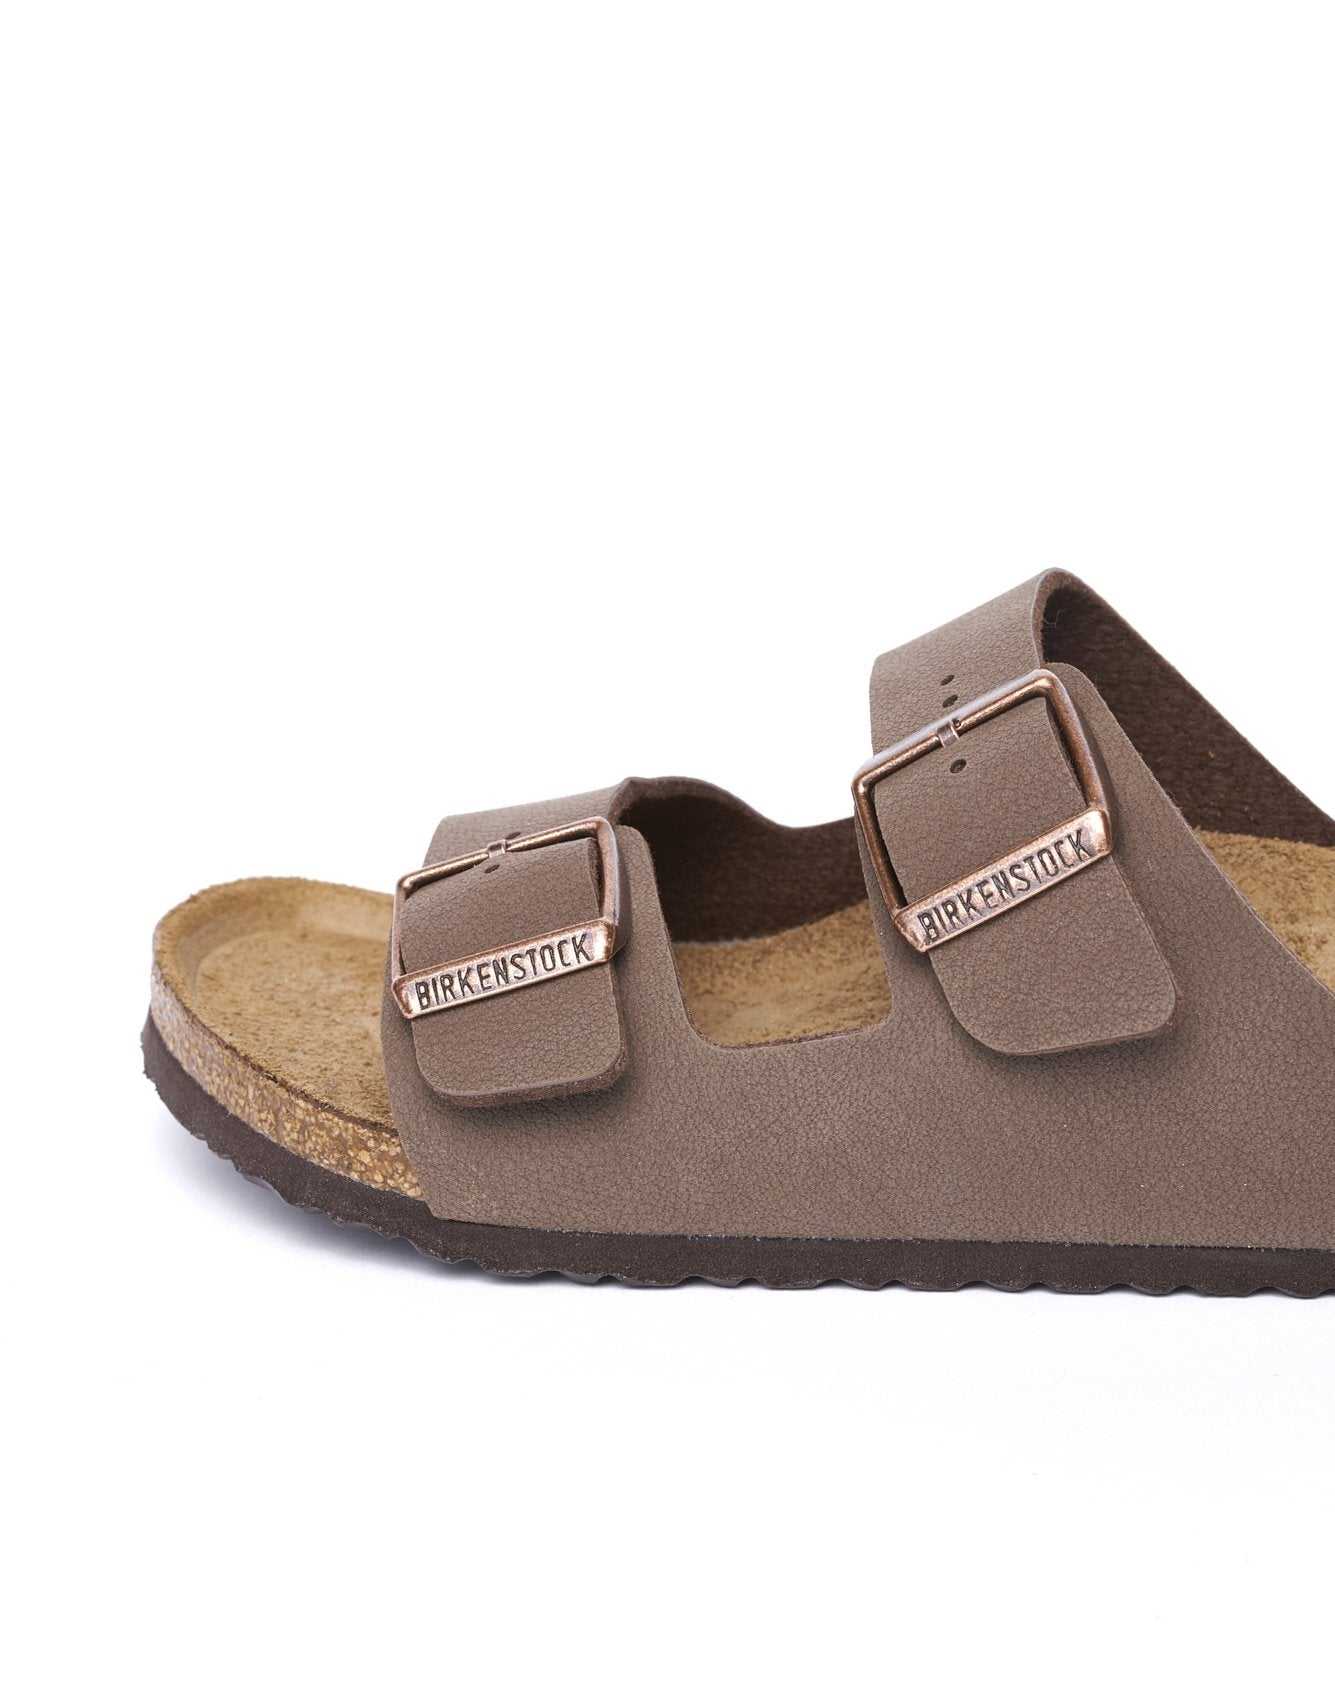 9dd5b28b8a7 Birkenstock mokka sandals for women available on the official Bellerose  eshop